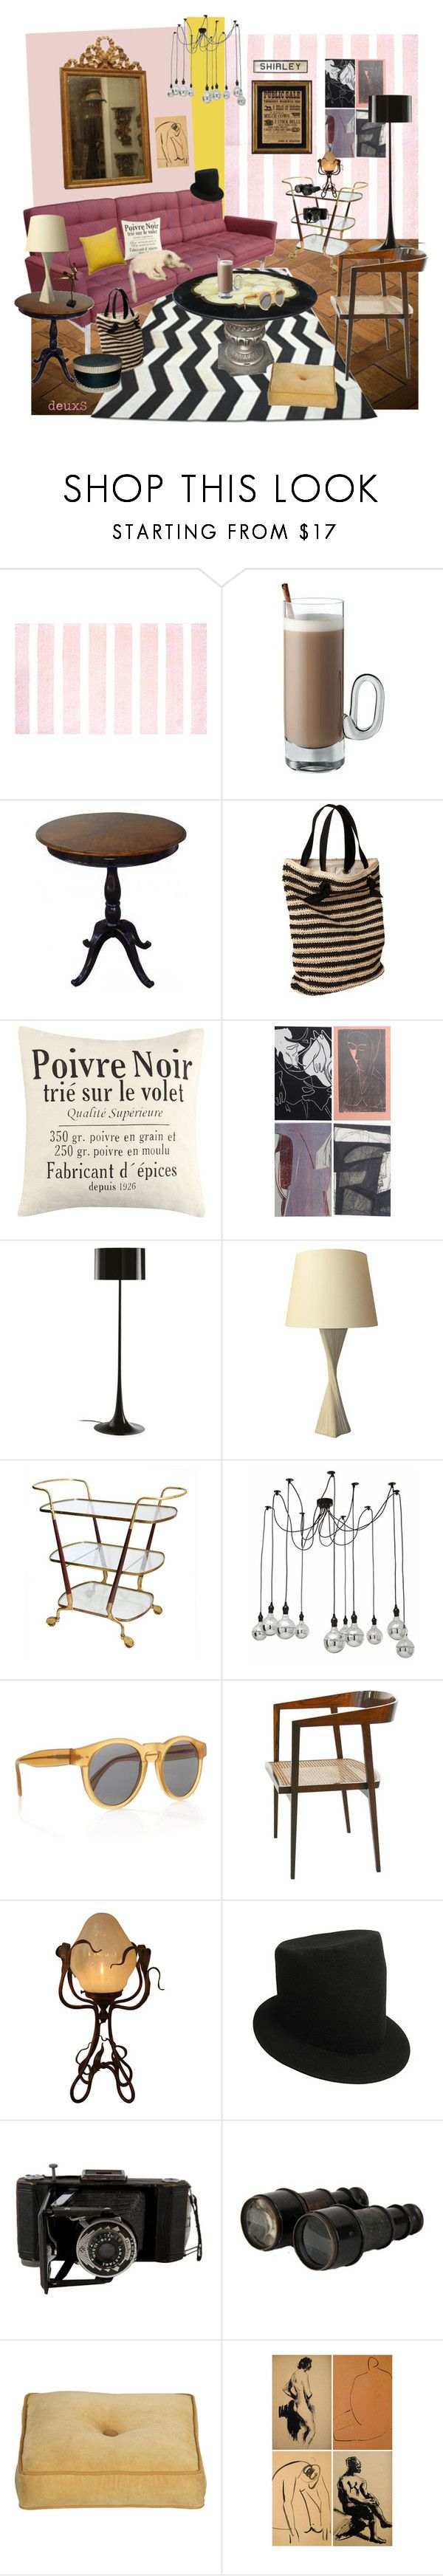 """Teeth"" by deuxs ❤ liked on Polyvore featuring interior, interiors, interior design, home, home decor, interior decorating, Shabby Chic, Pappelina, MCM and Lancaster"